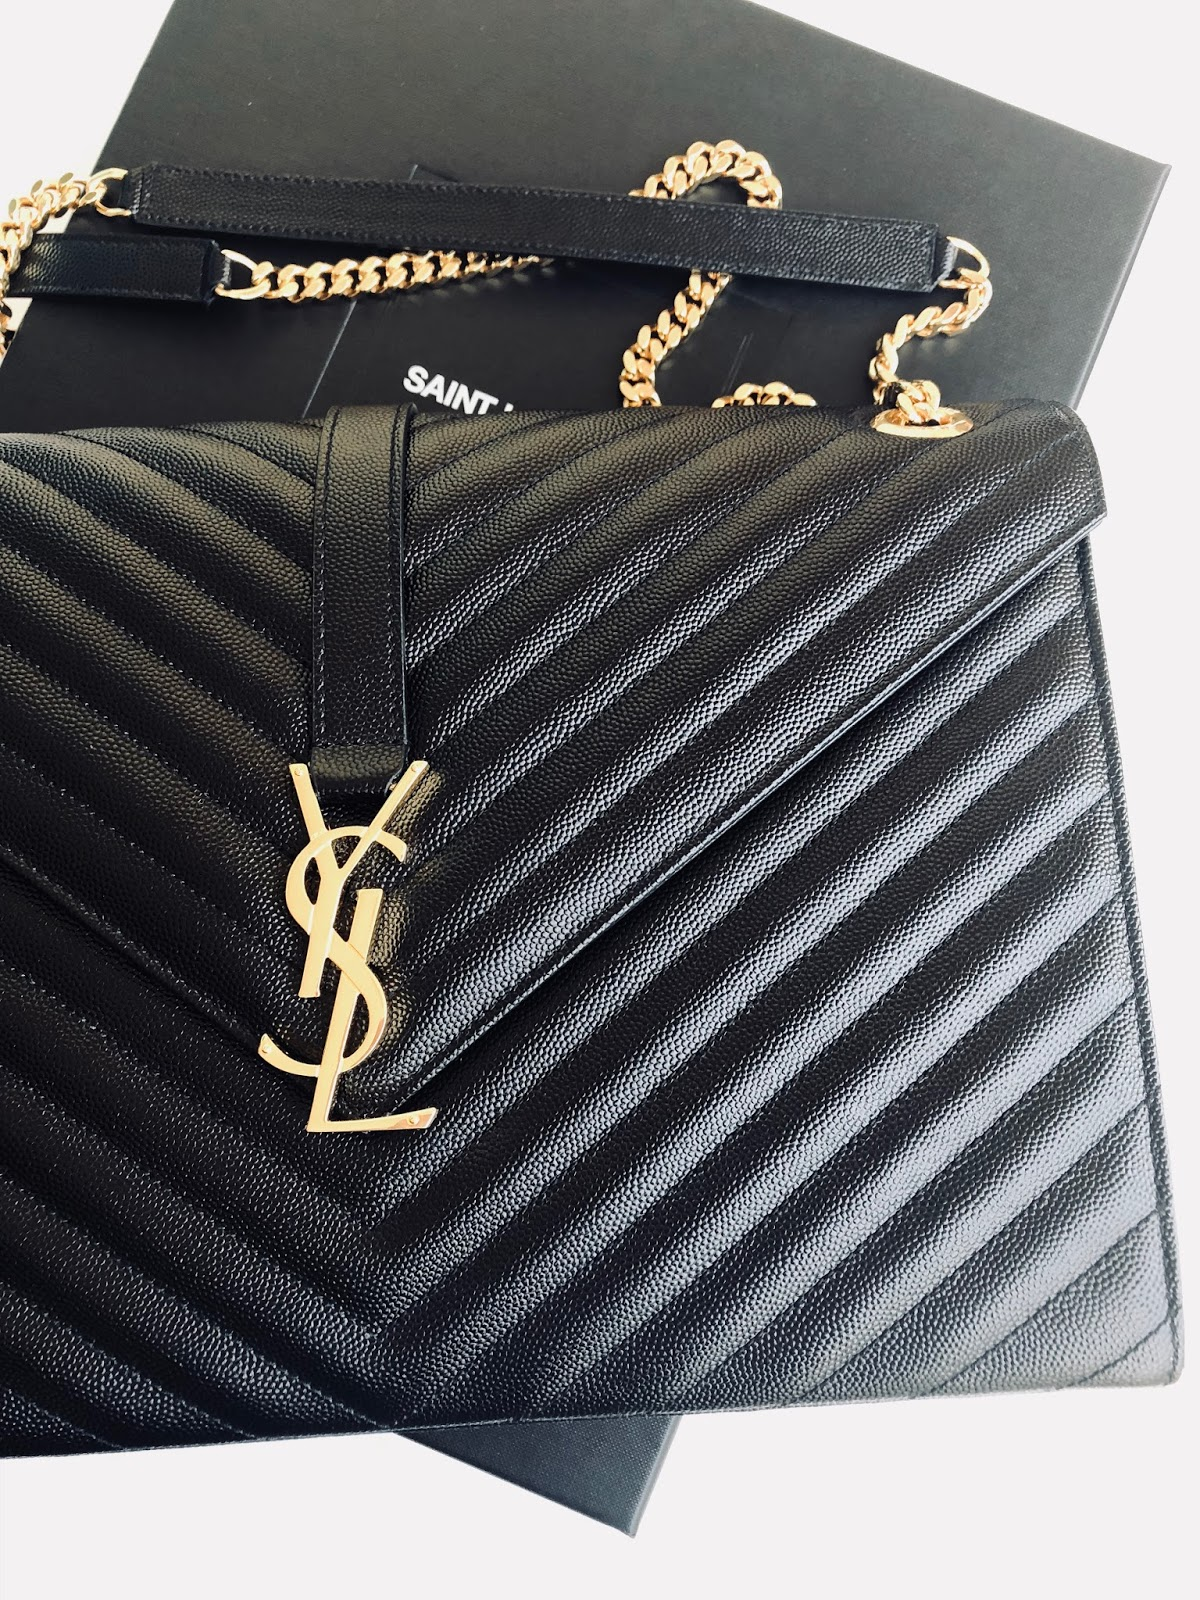 www.ourdubailife.com - Unboxing Day : What I Got For XMAS 2017 YSL Matelasse handbag